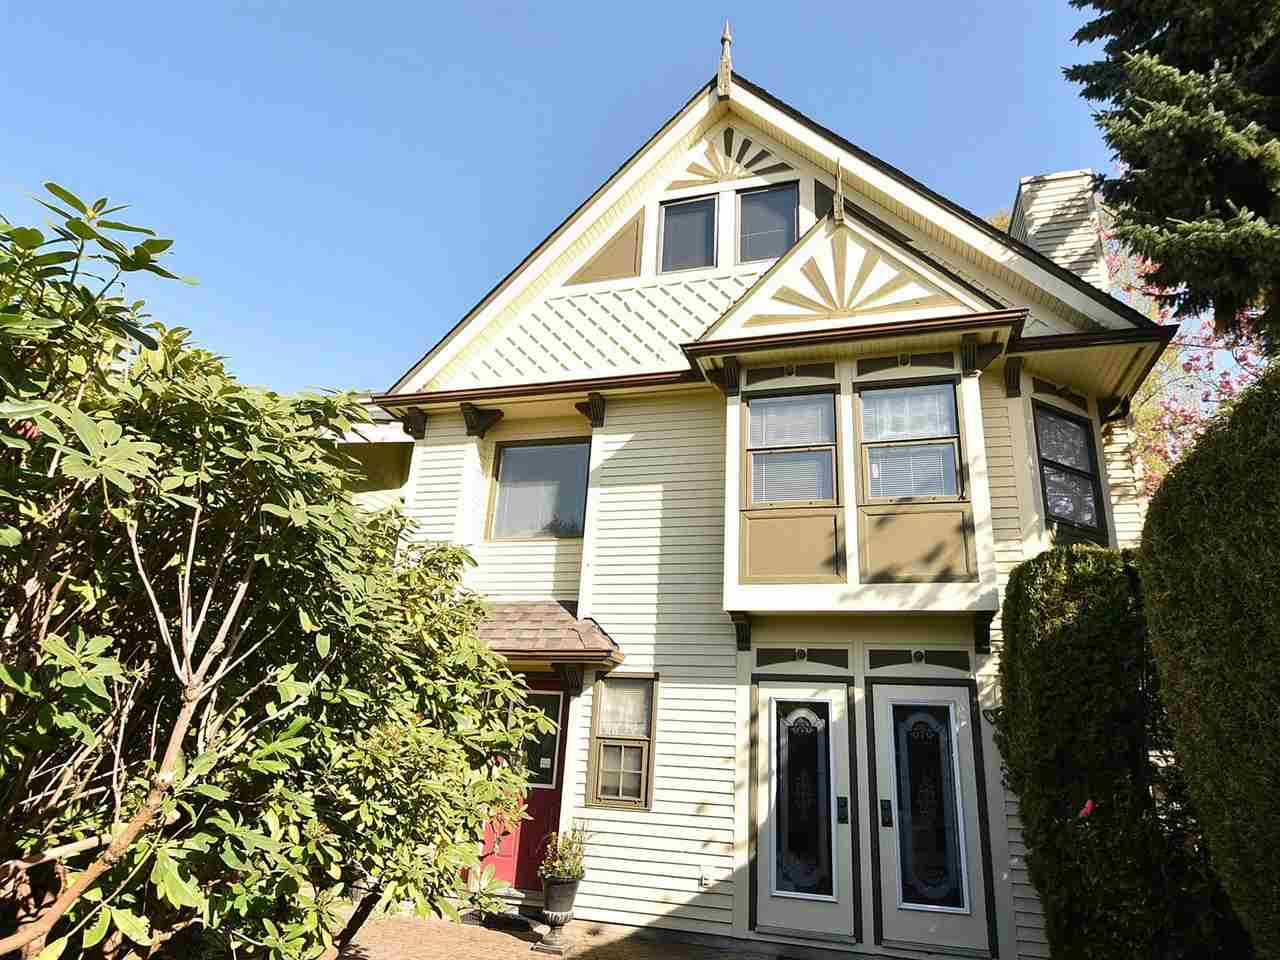 Main Photo: 3203 W 3RD Avenue in Vancouver: Kitsilano House 1/2 Duplex for sale (Vancouver West)  : MLS® # R2053036